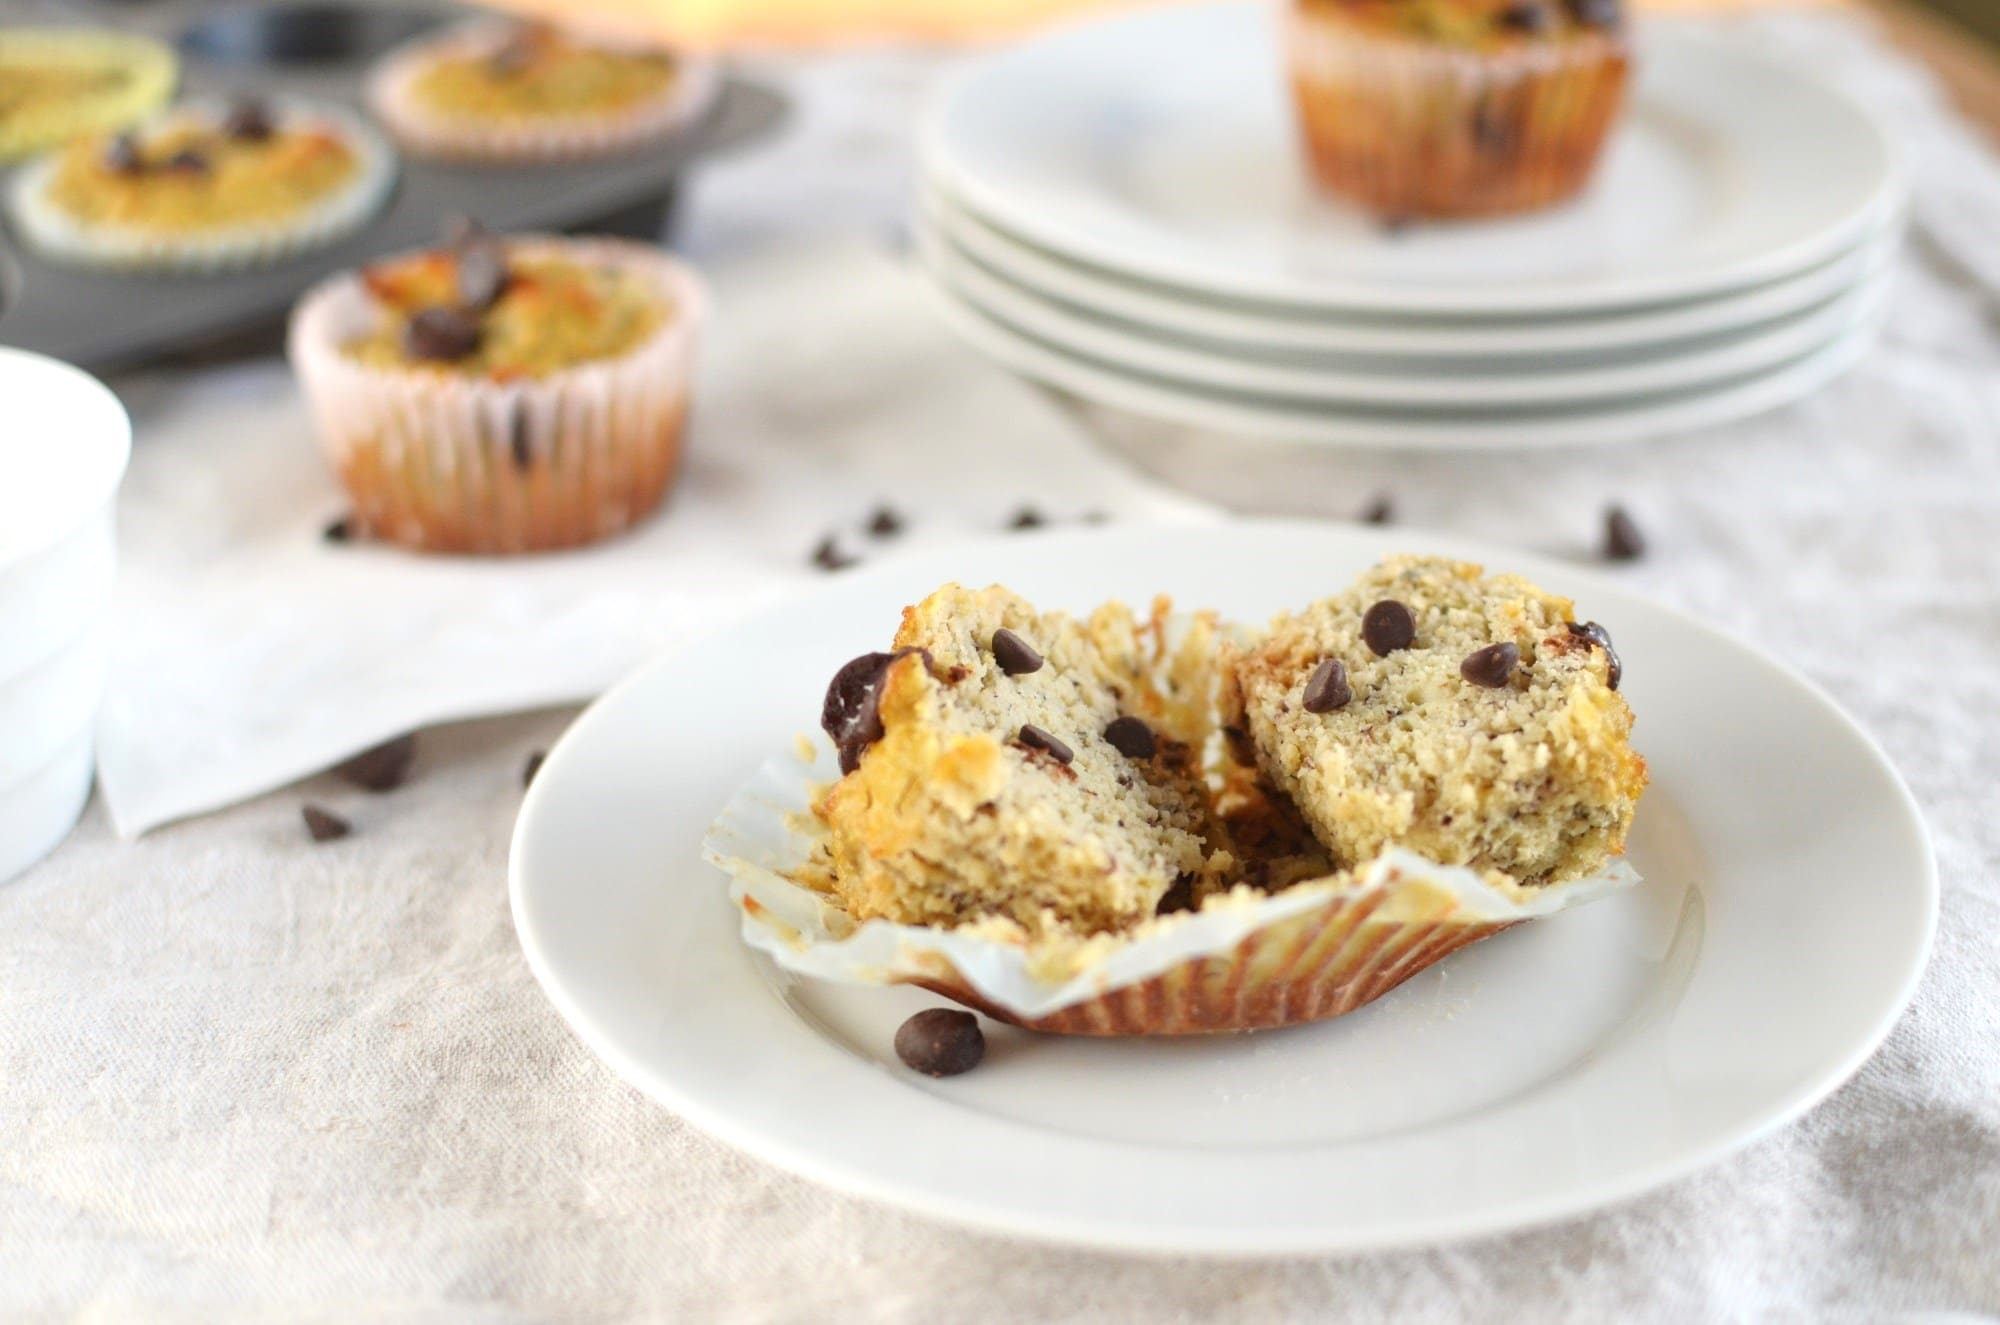 ... flours to work with. And these muffins, oh my, they are so delicious